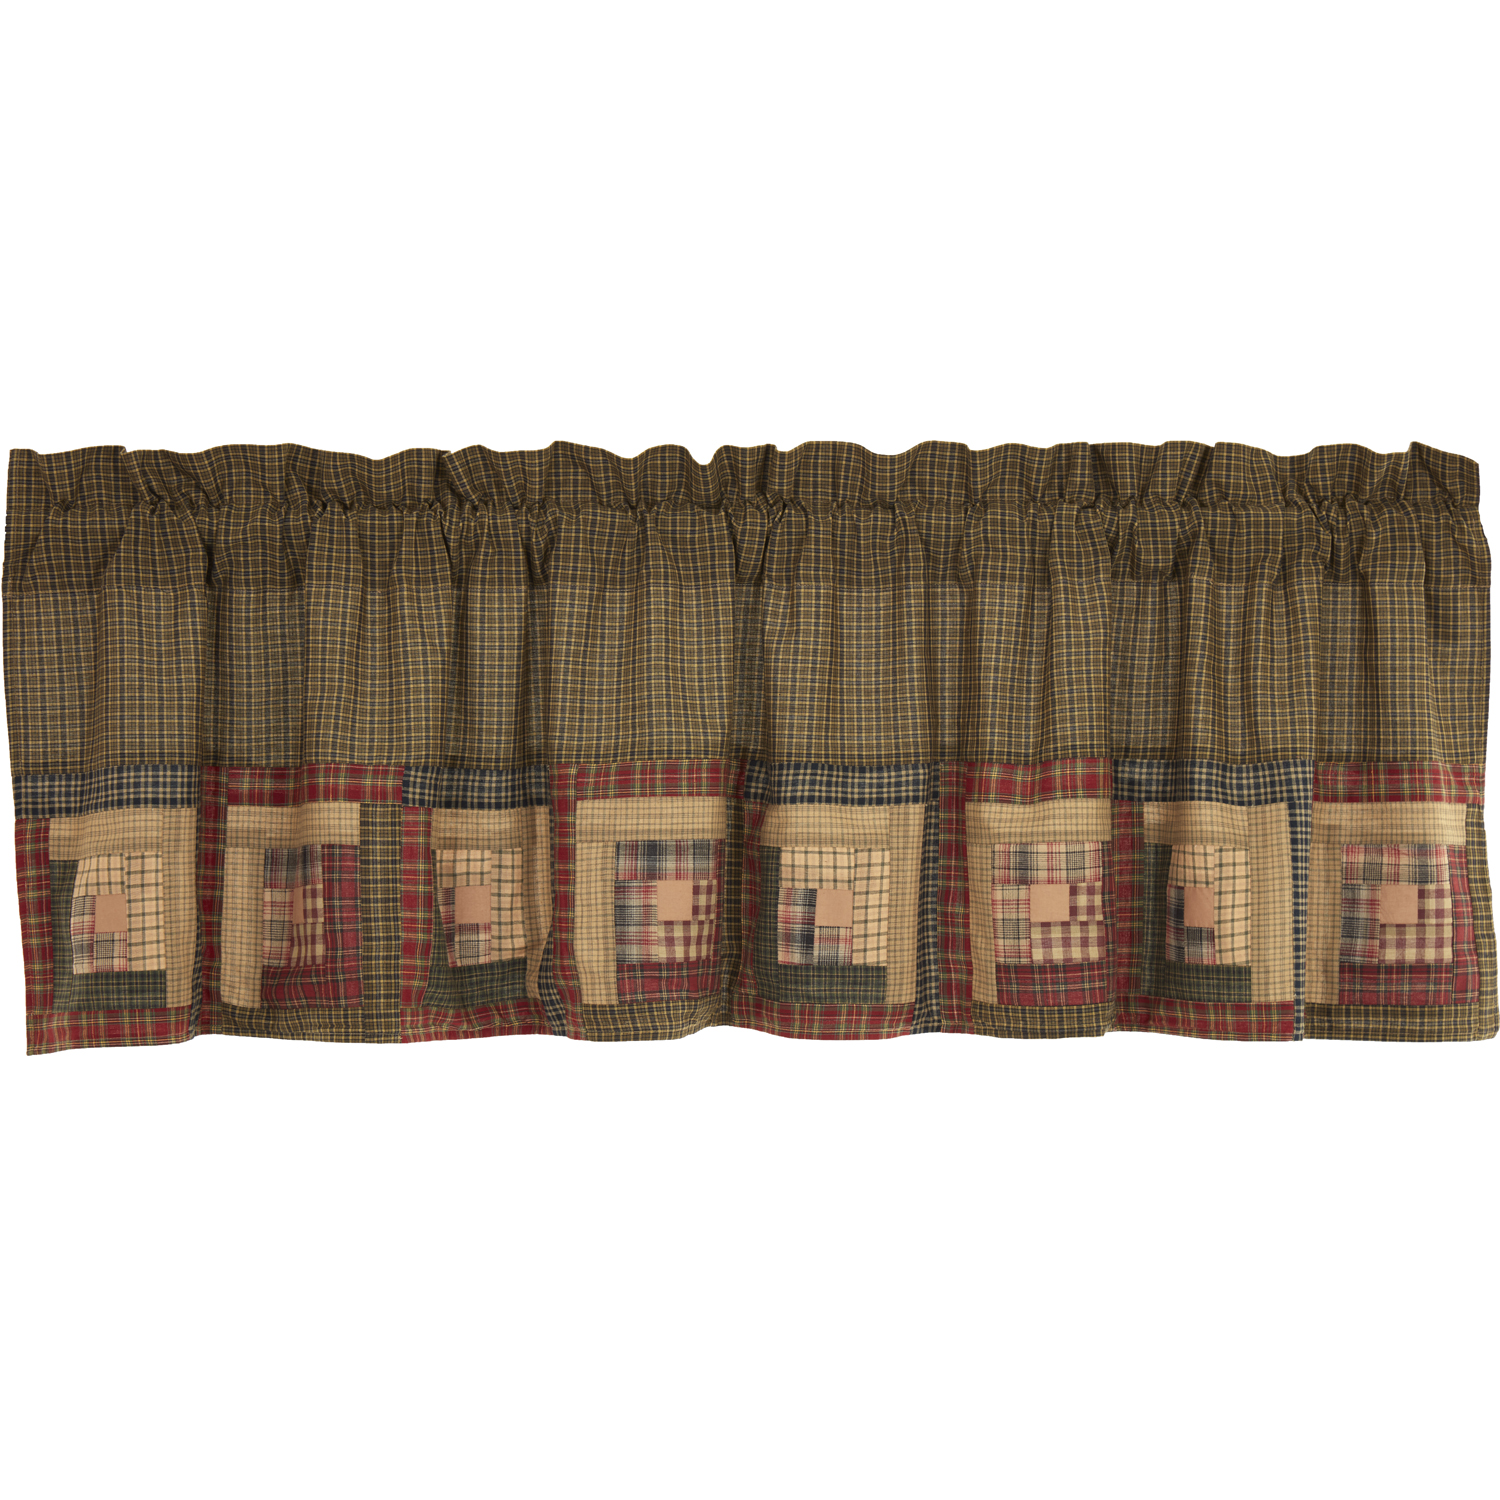 Tea Cabin Valance Log Cabin Block Border 20x72